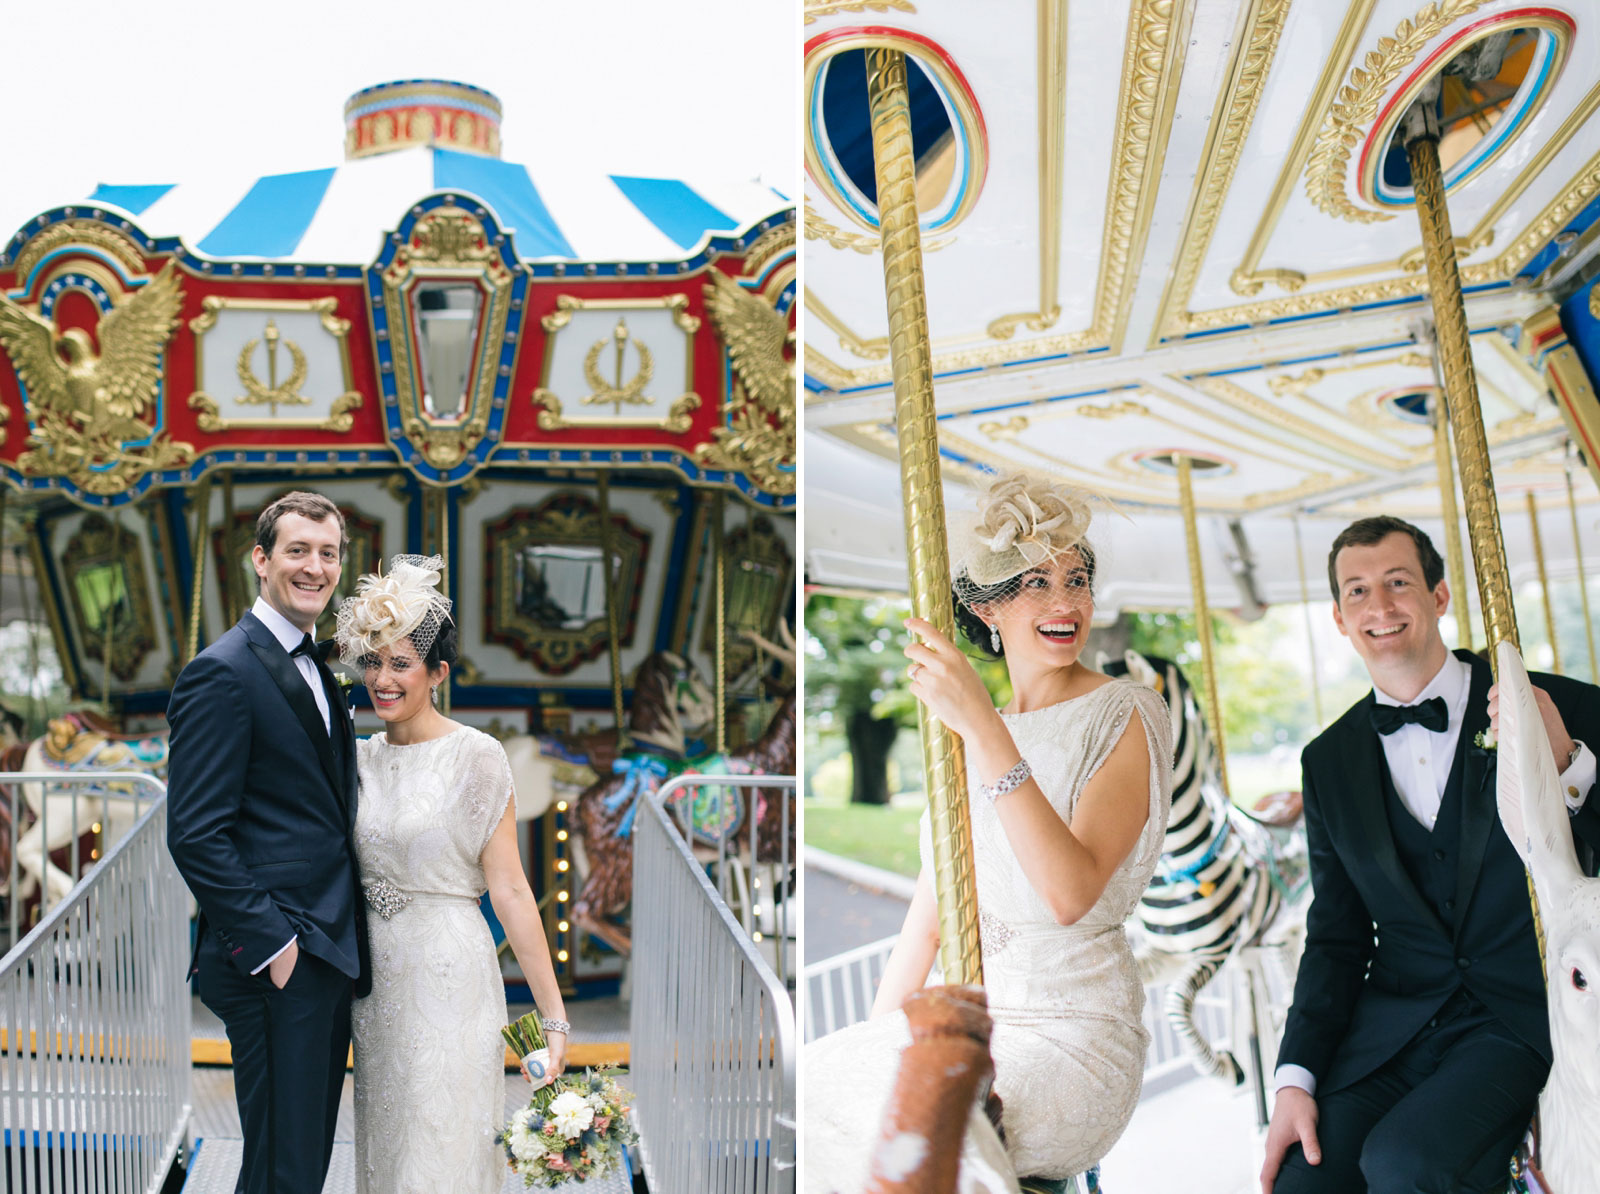 vintage bride and groom riding on the carousel at boston common during their portrait shoot